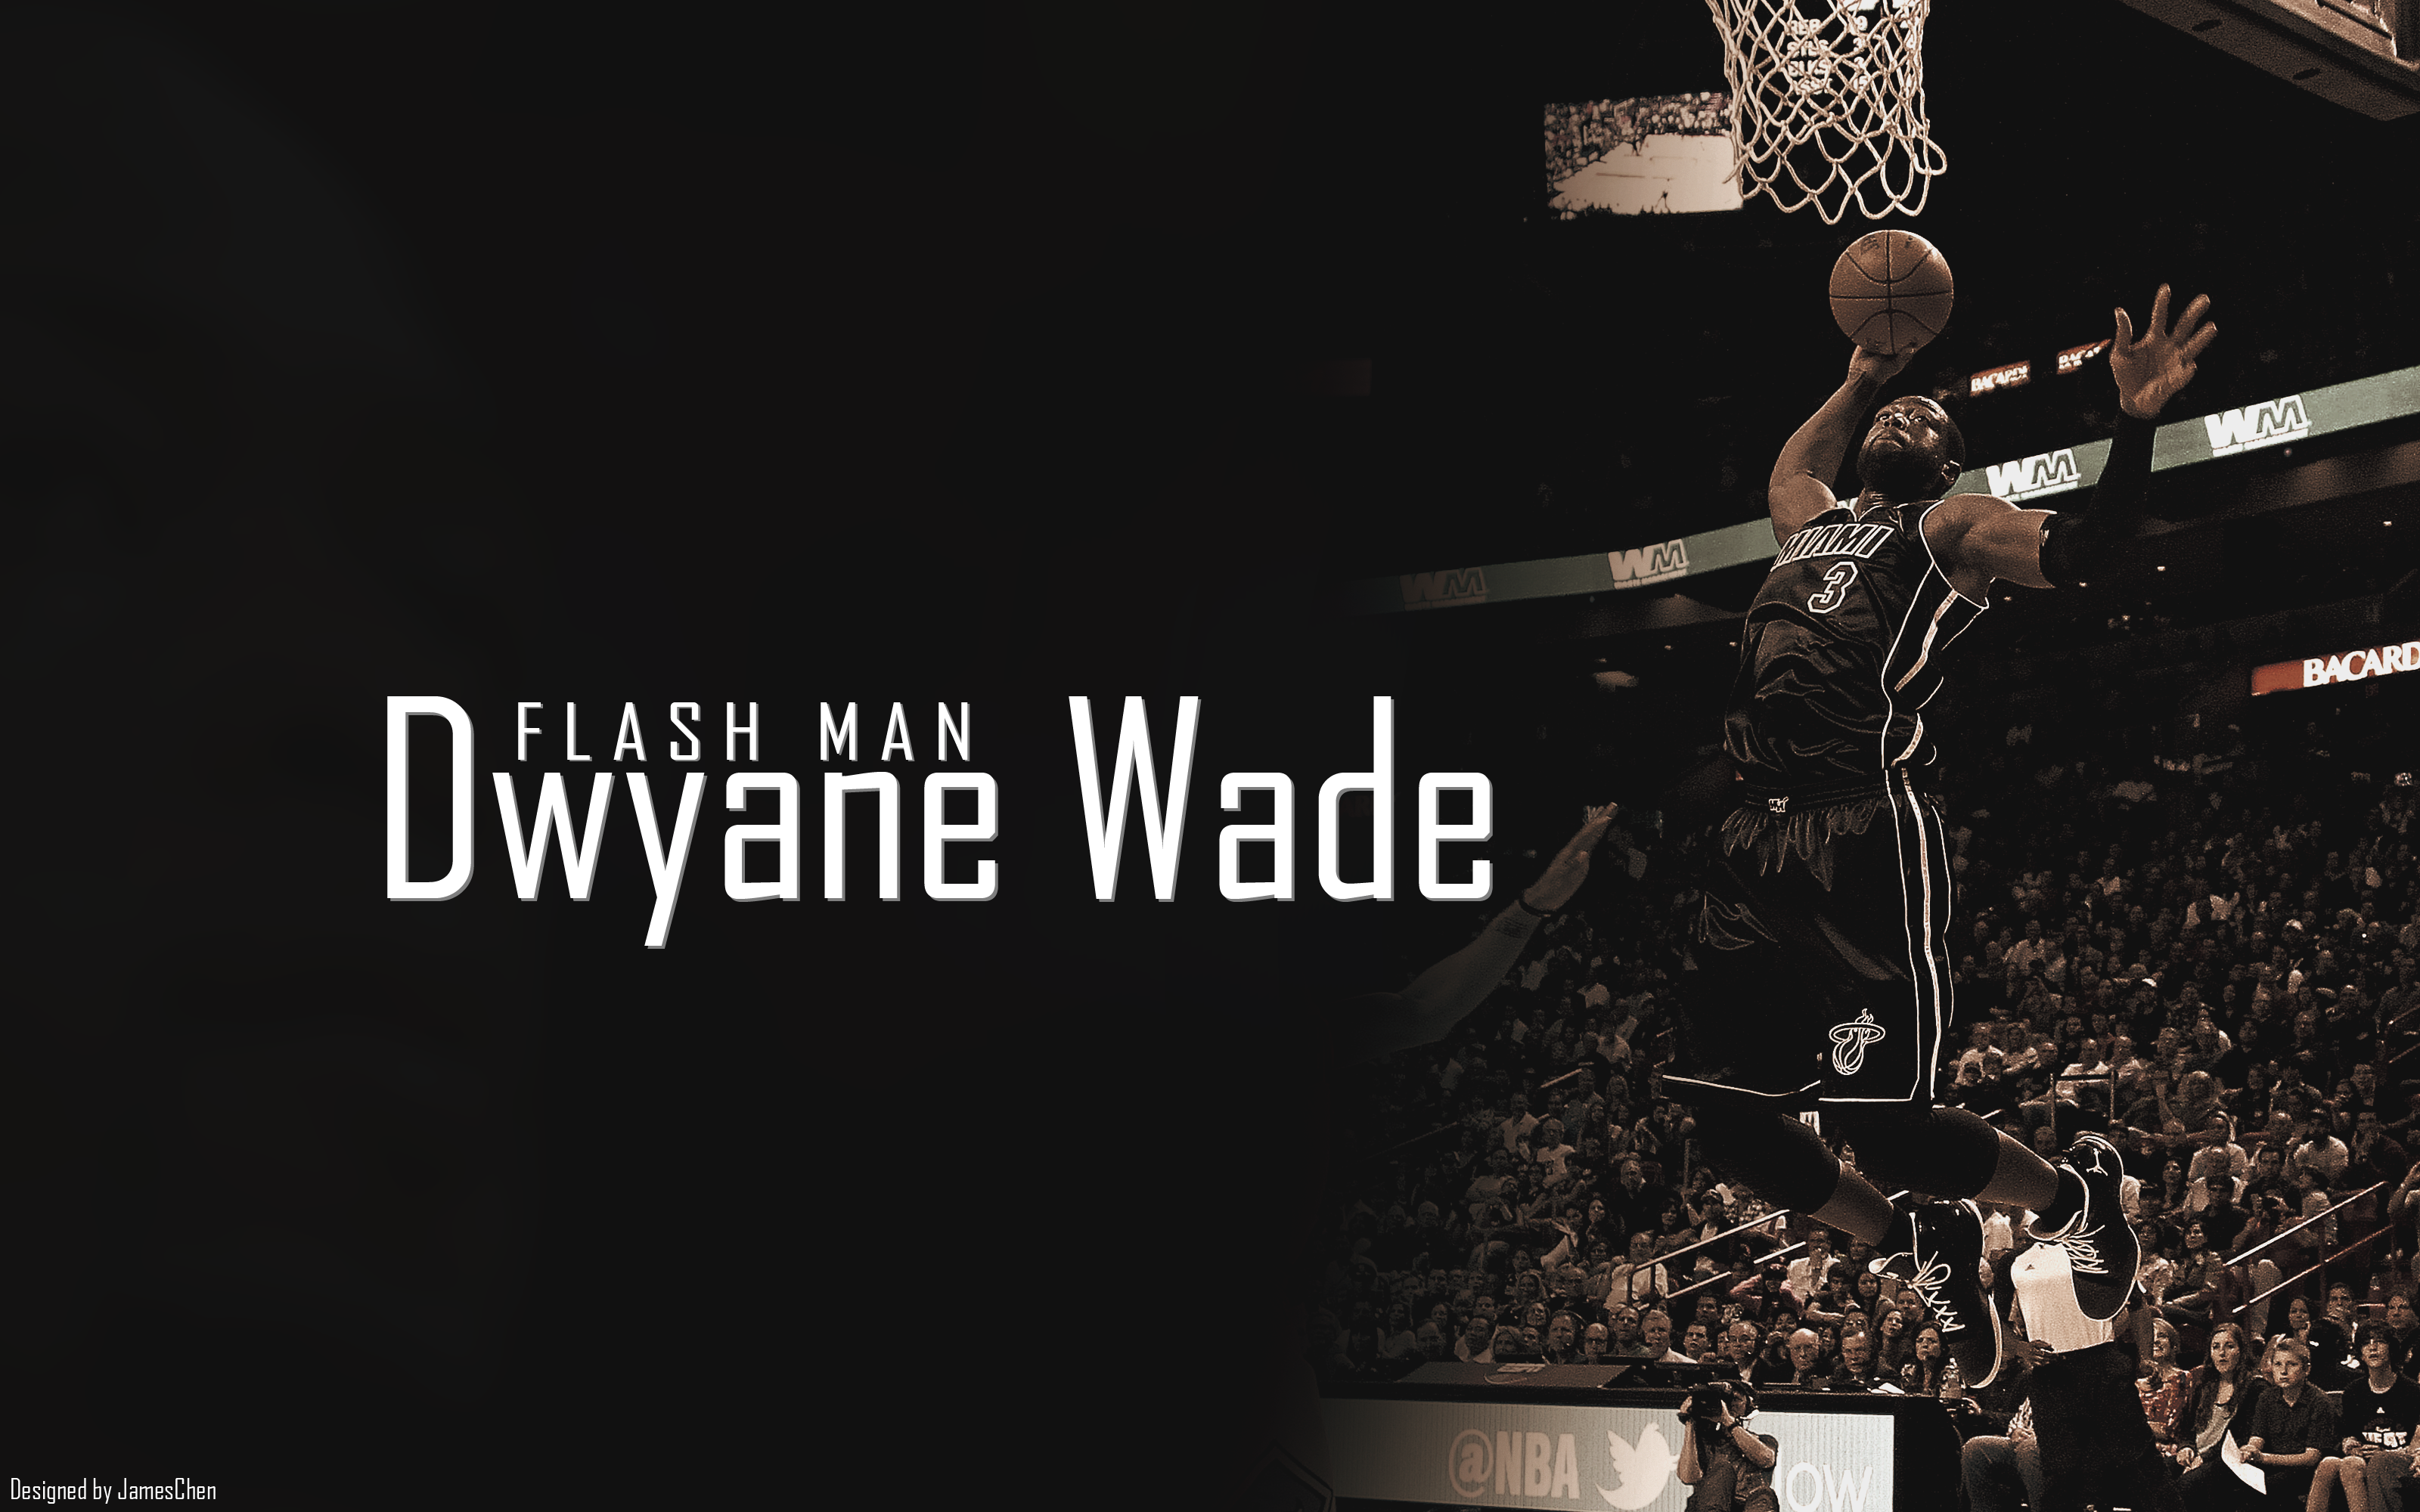 Flash Man Dwyane Wade Exclusive HD Wallpapers 1772 3200x2000